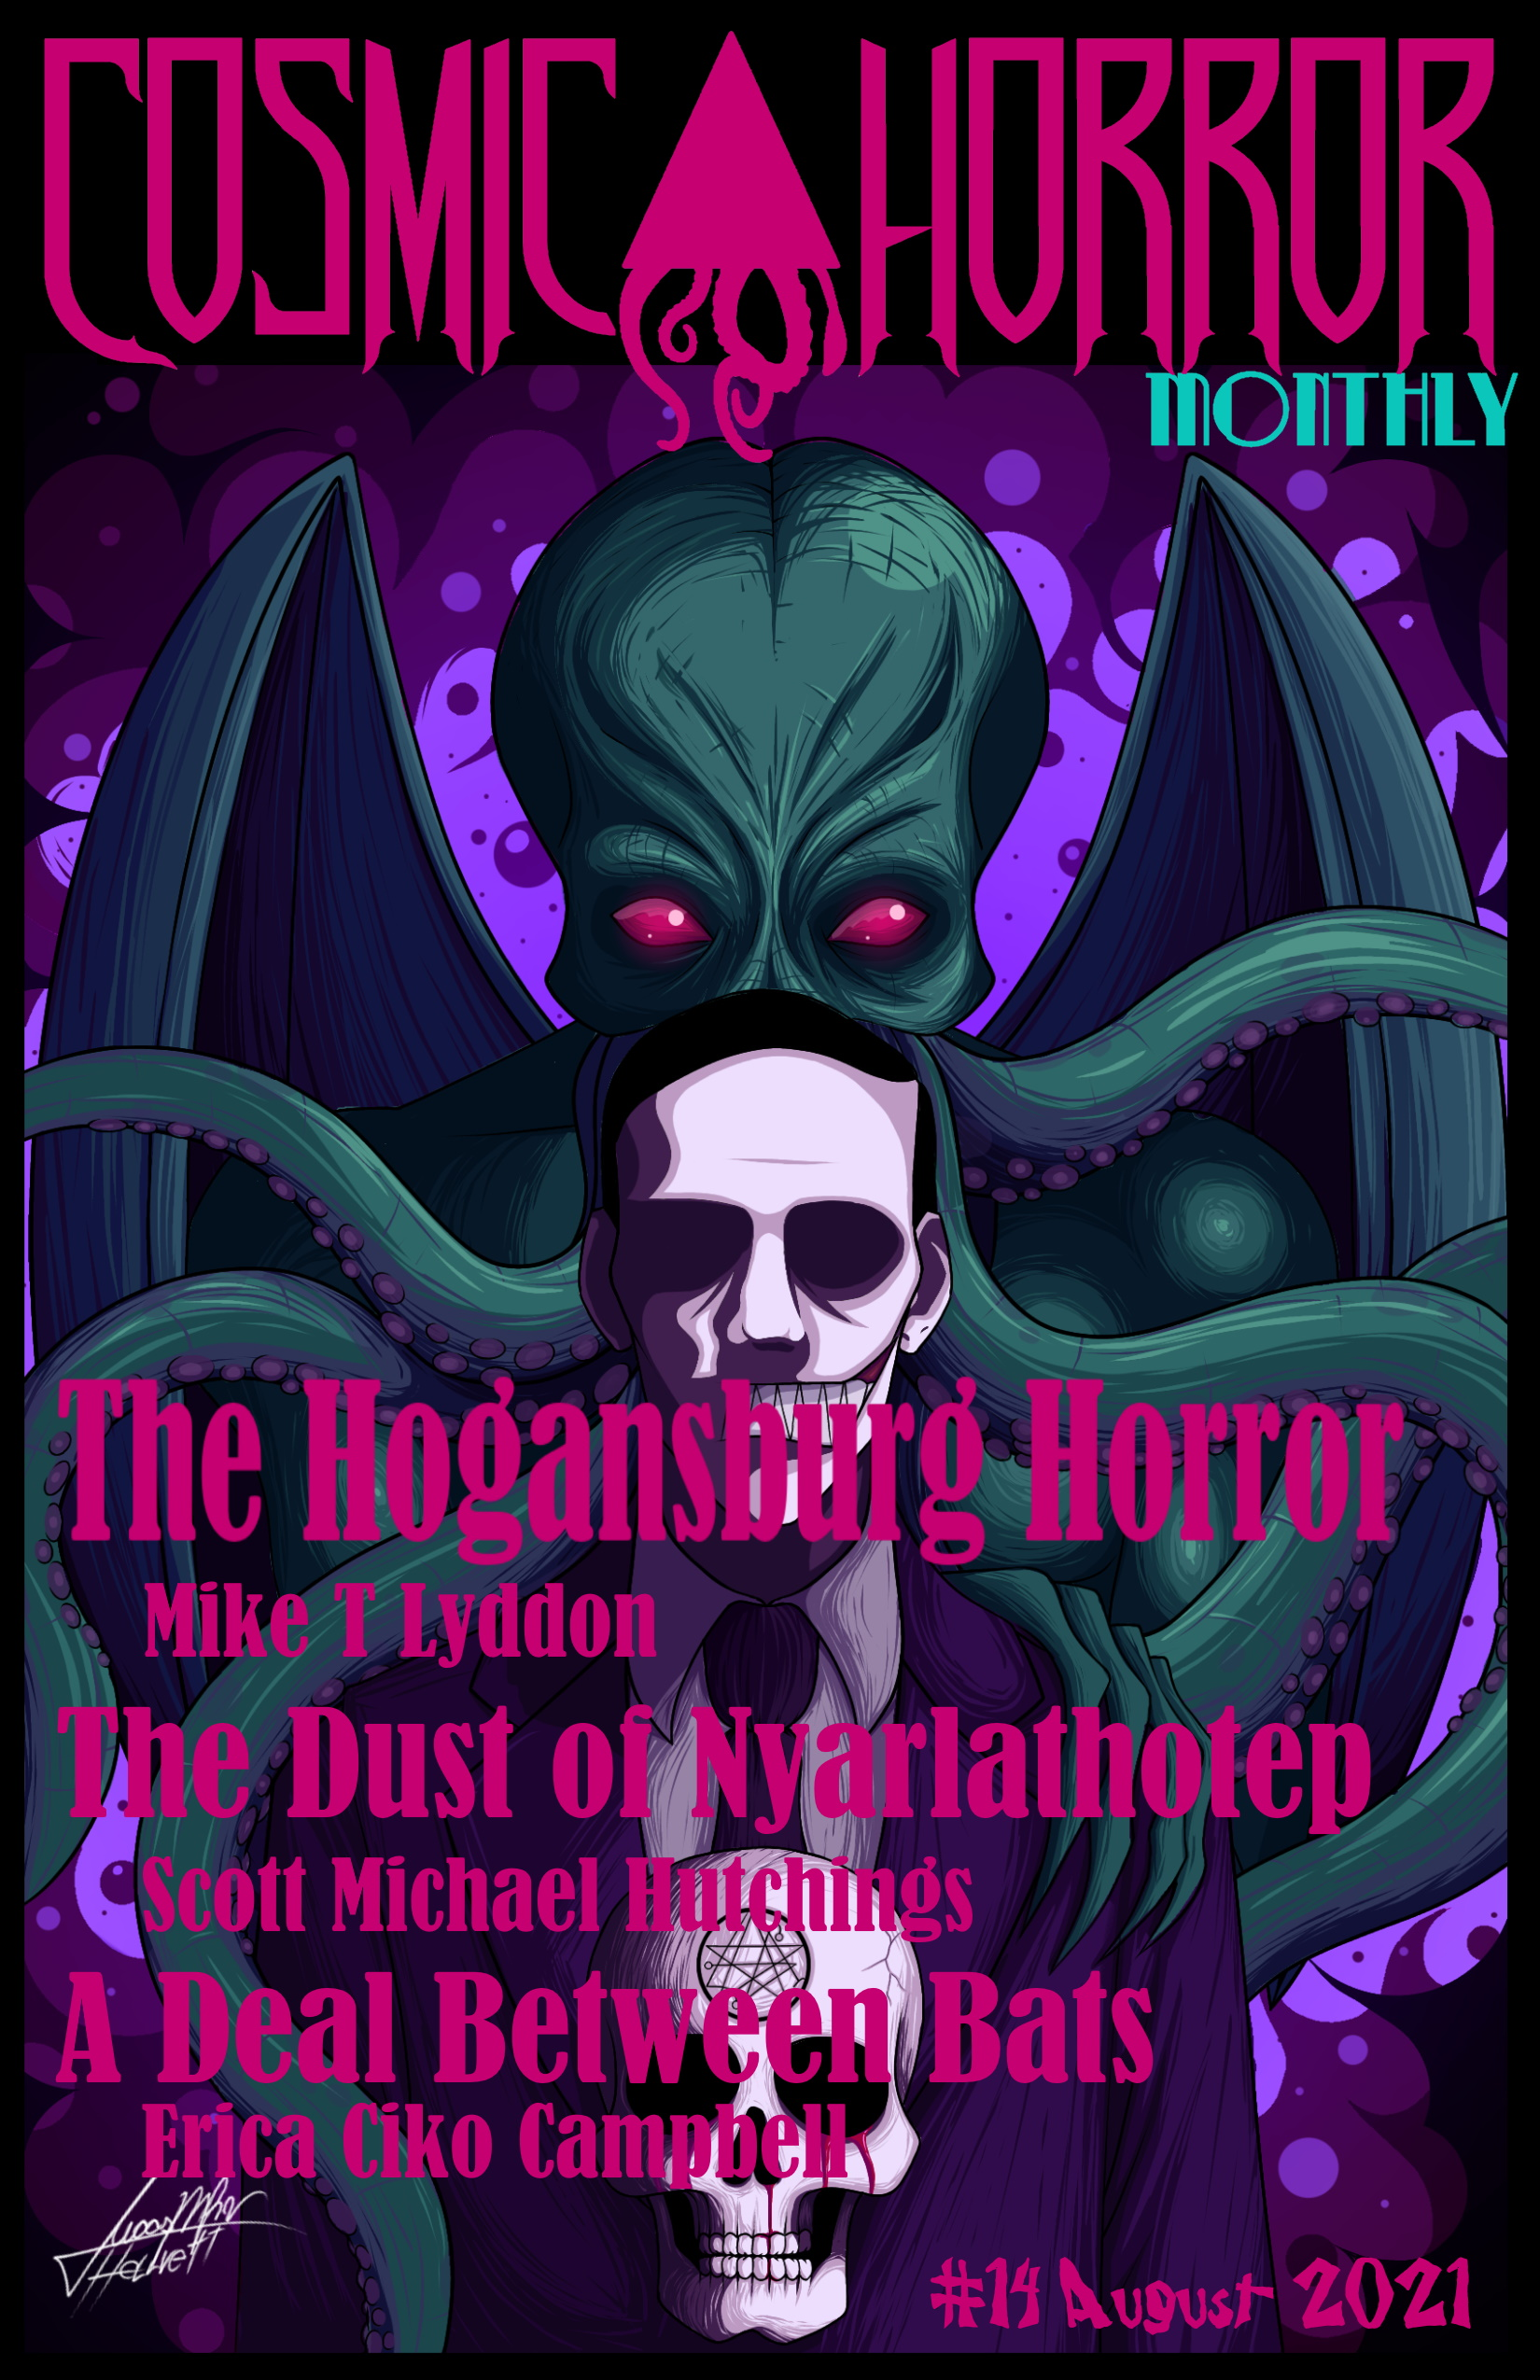 Reflections on My Favorite Author, and the Honor of Being Published in a Special Issue of Cosmic Horror Monthly Devoted Entirely to Him